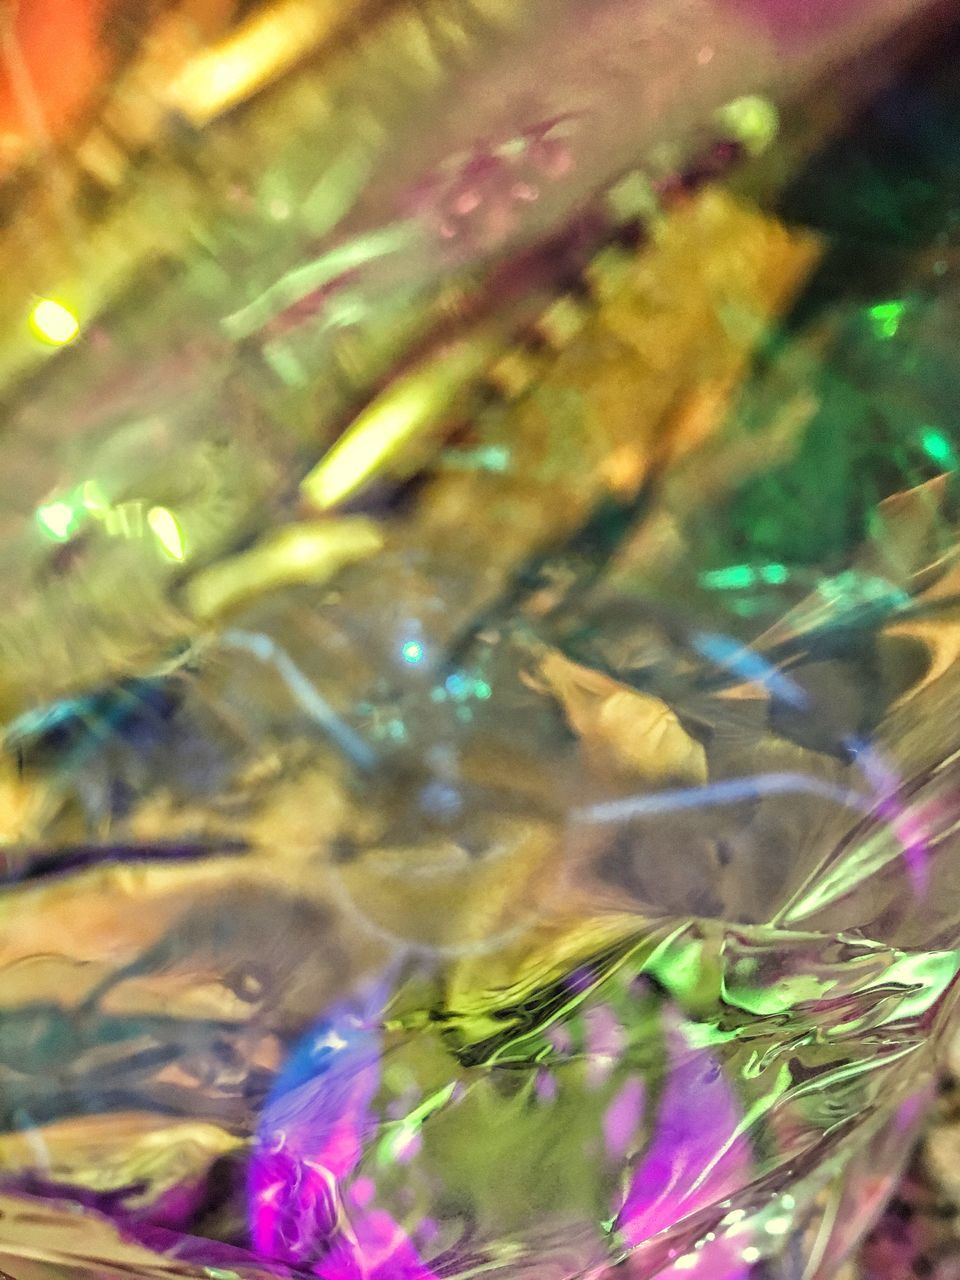 close-up, no people, outdoors, multi colored, nature, day, fragility, freshness